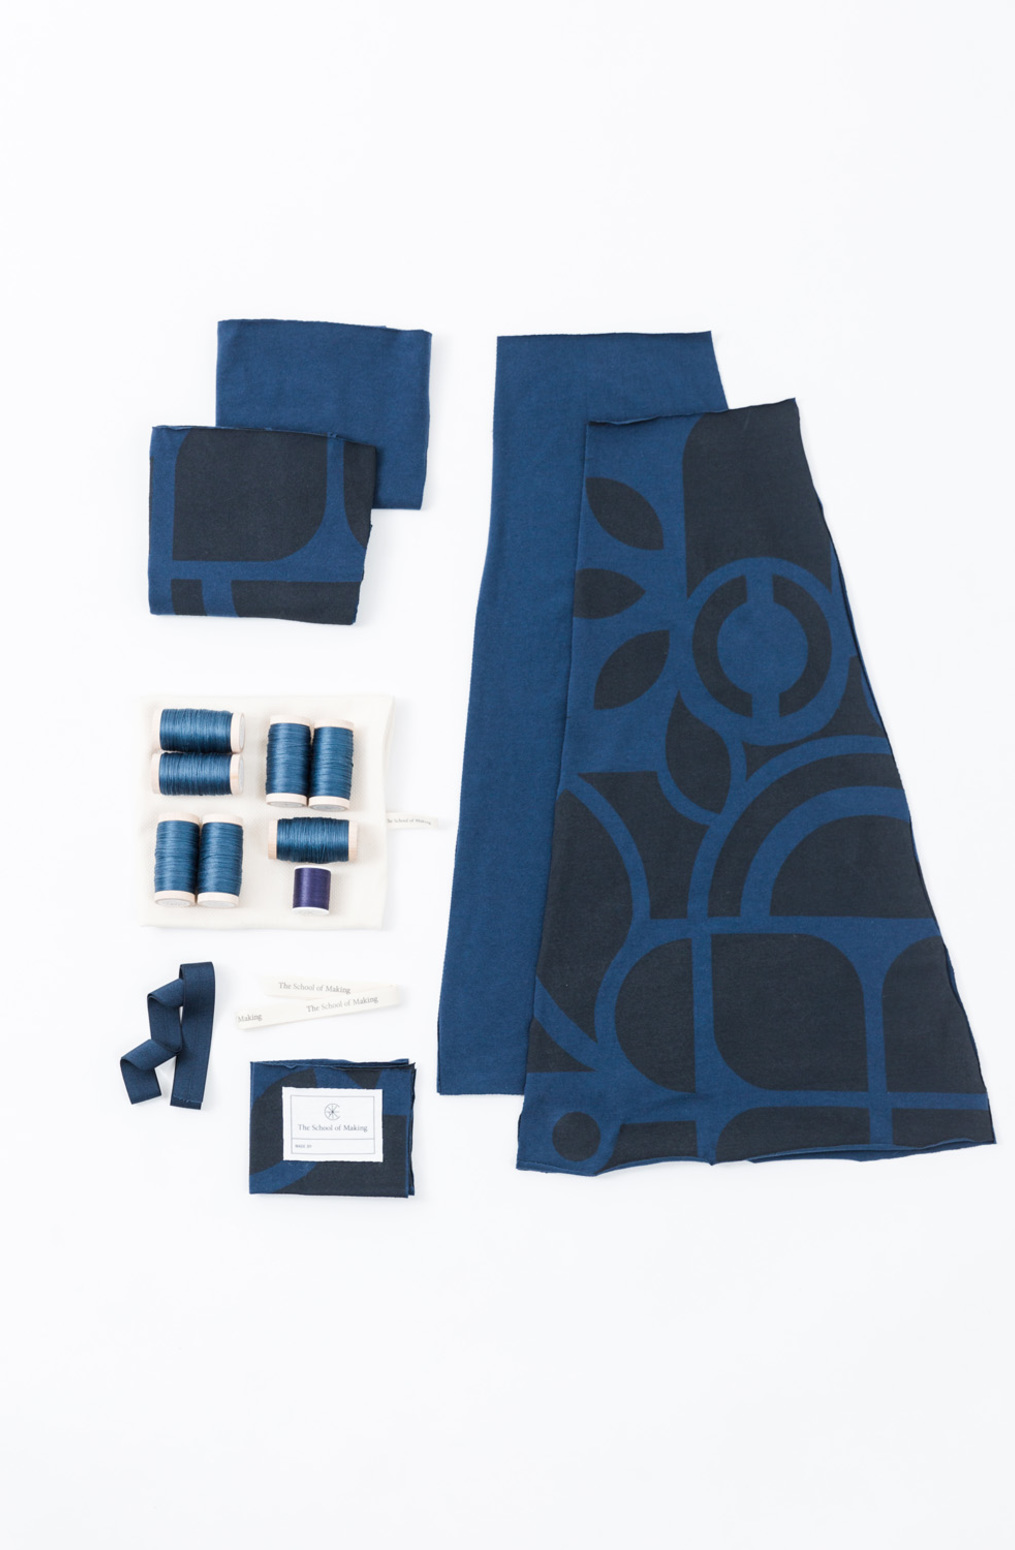 The school of making embroidered swing skirt diy kit